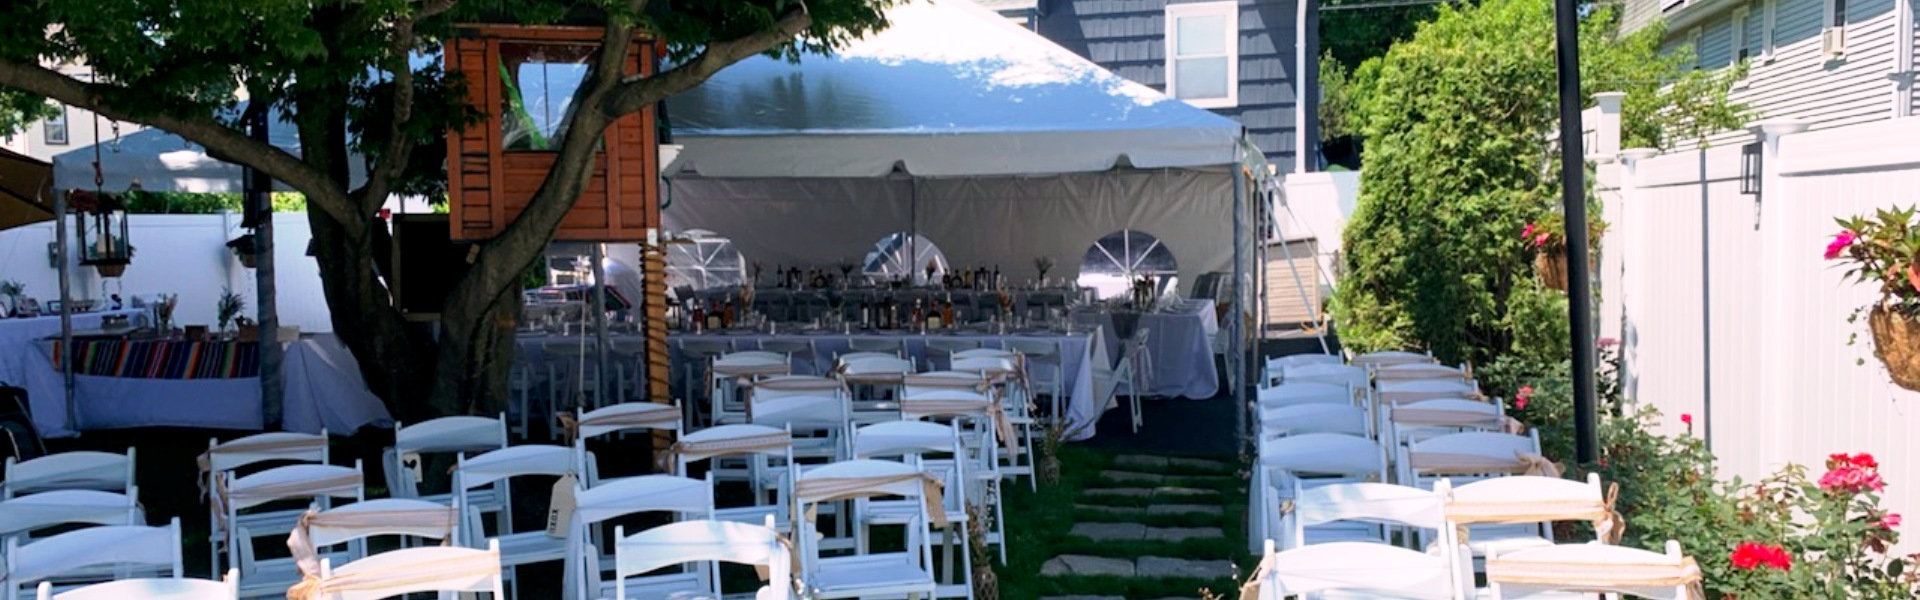 Tent Rental in Port Chester